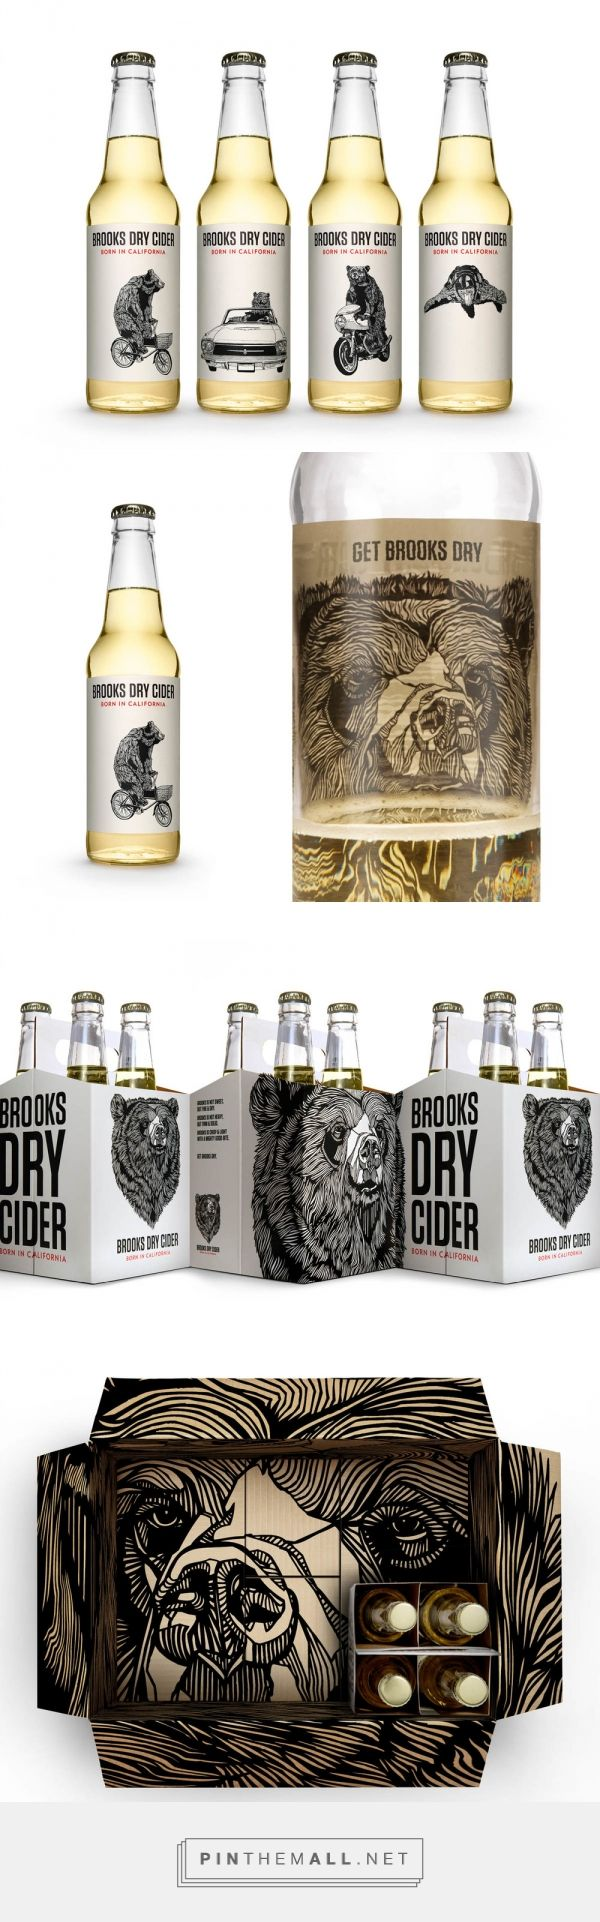 Strong brand identity, with use of the bear mascot. The series provides variety…